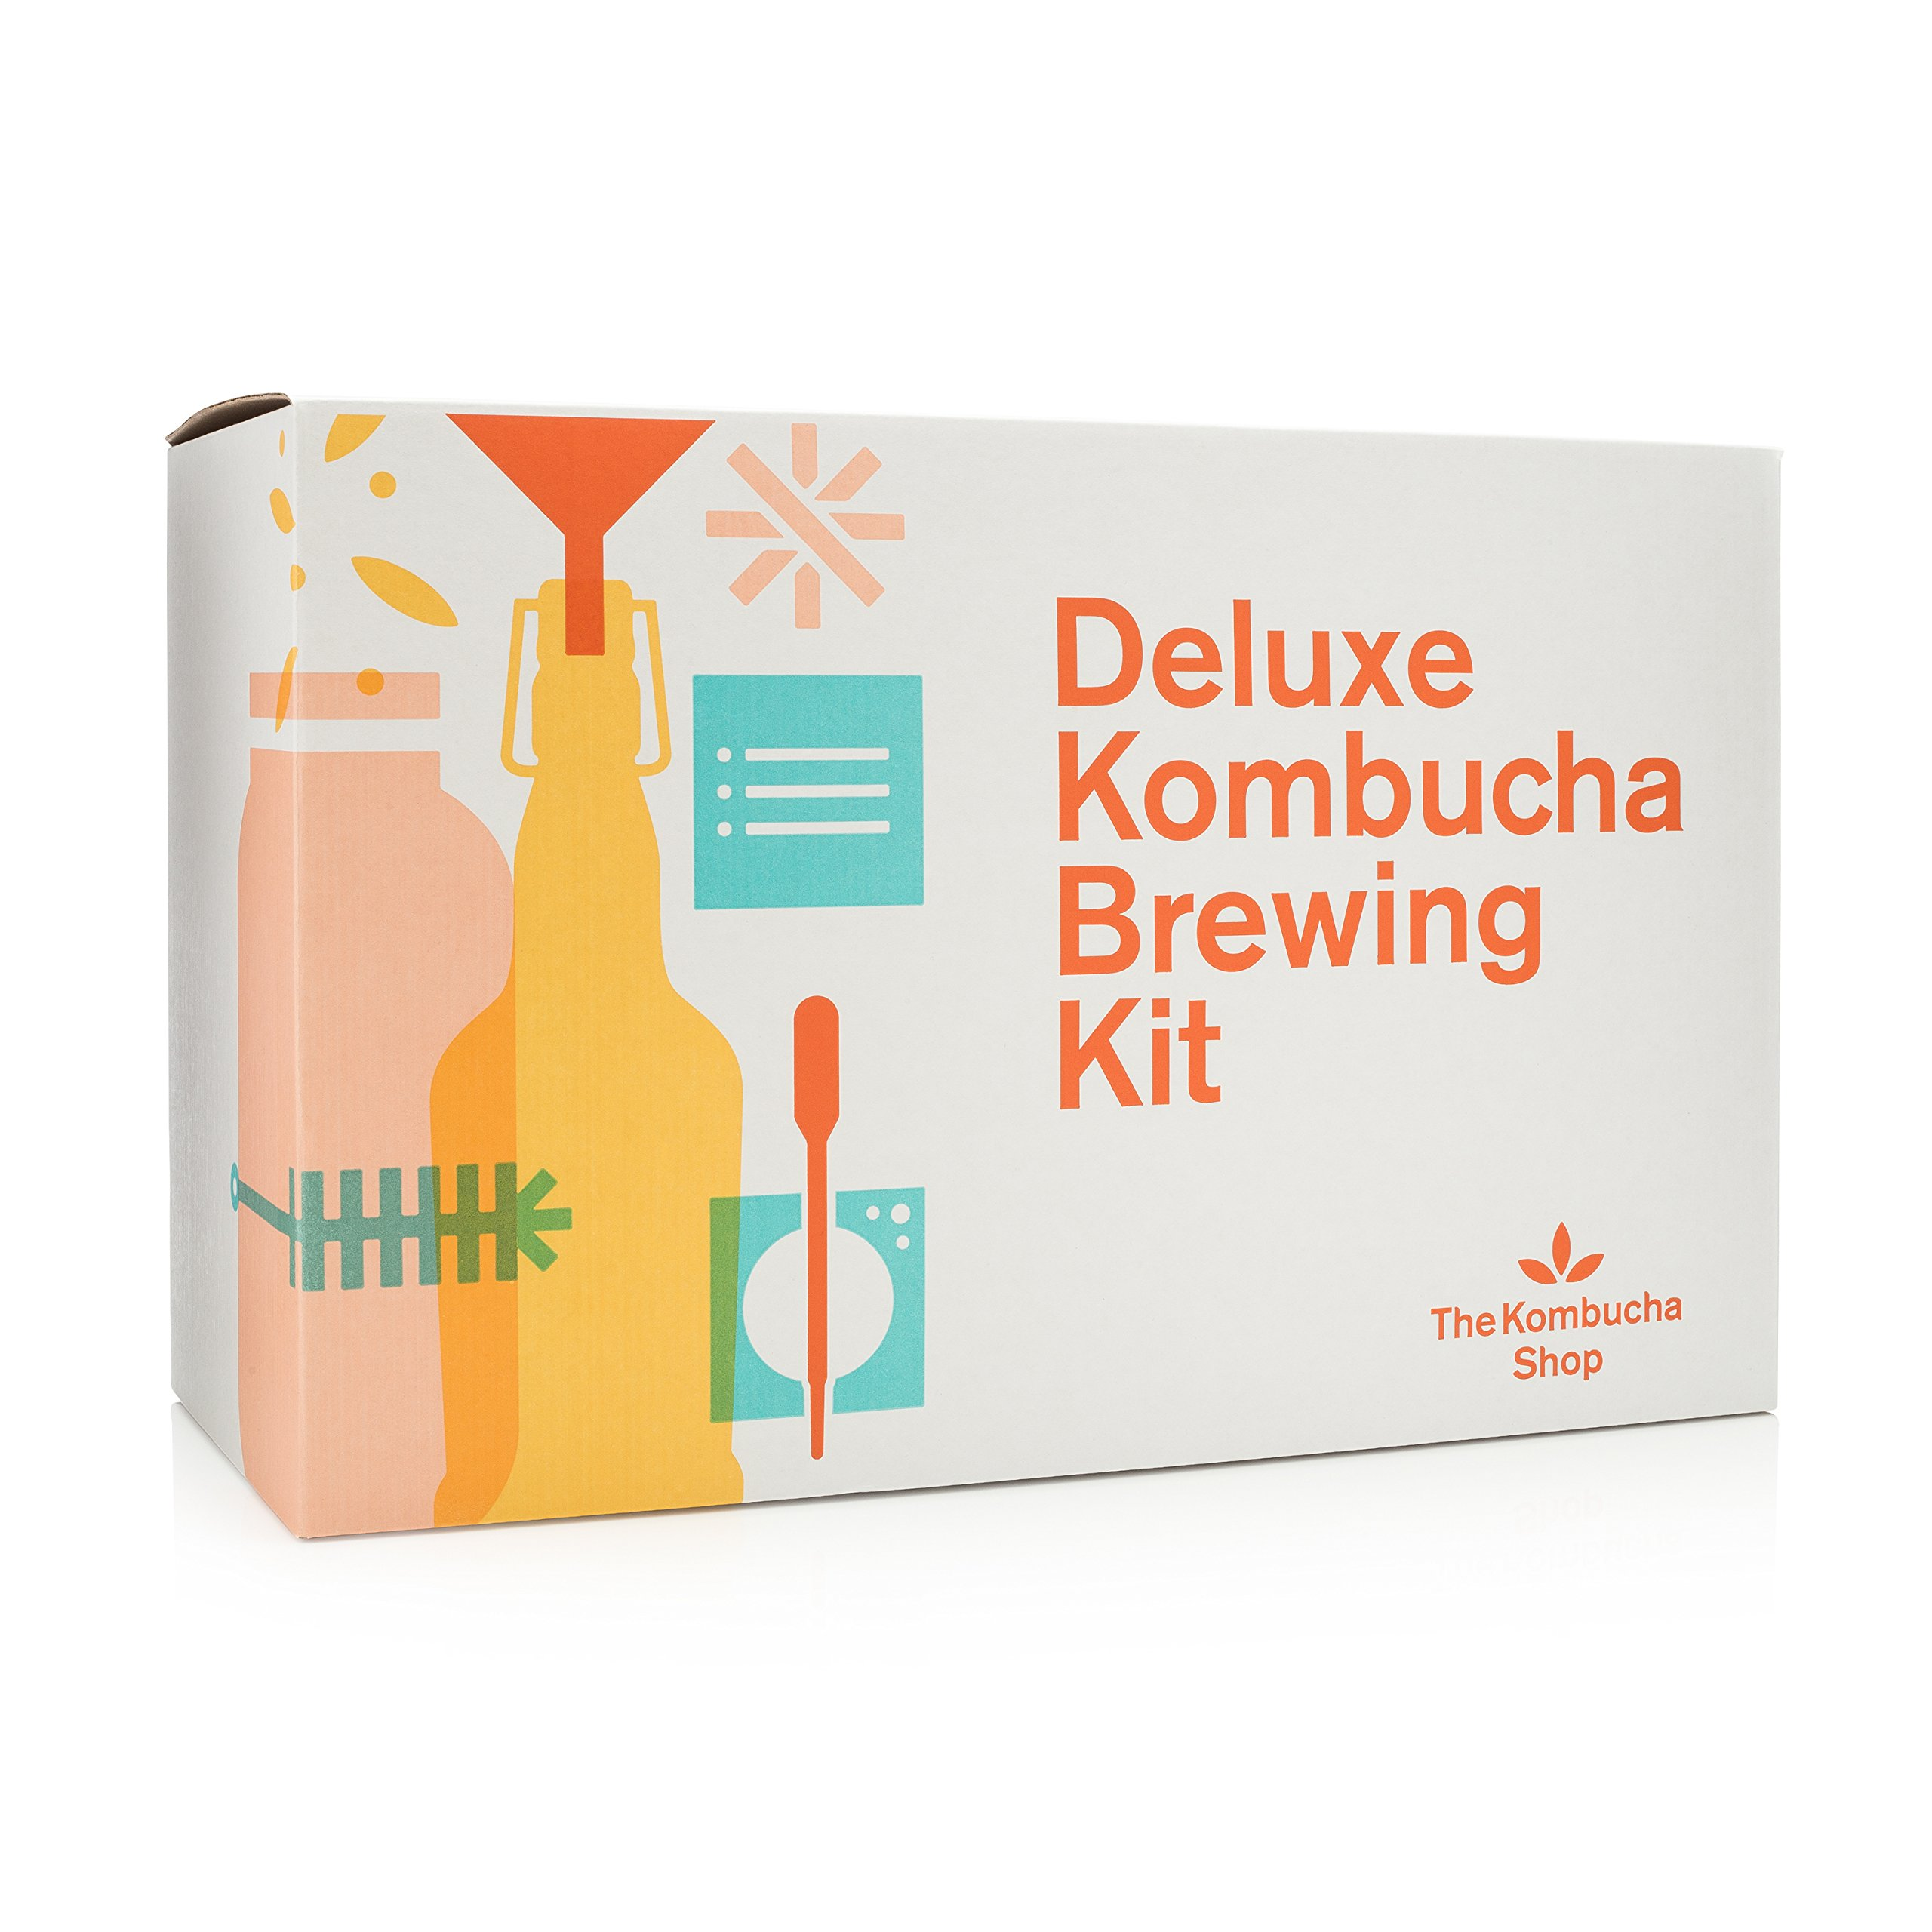 Deluxe Kombucha Brewing Kit - Six Swing Top Bottles, Stainless Steel Funnel, Custom Bottle Brush & Our Original Brewing Kit by The Kombucha Shop